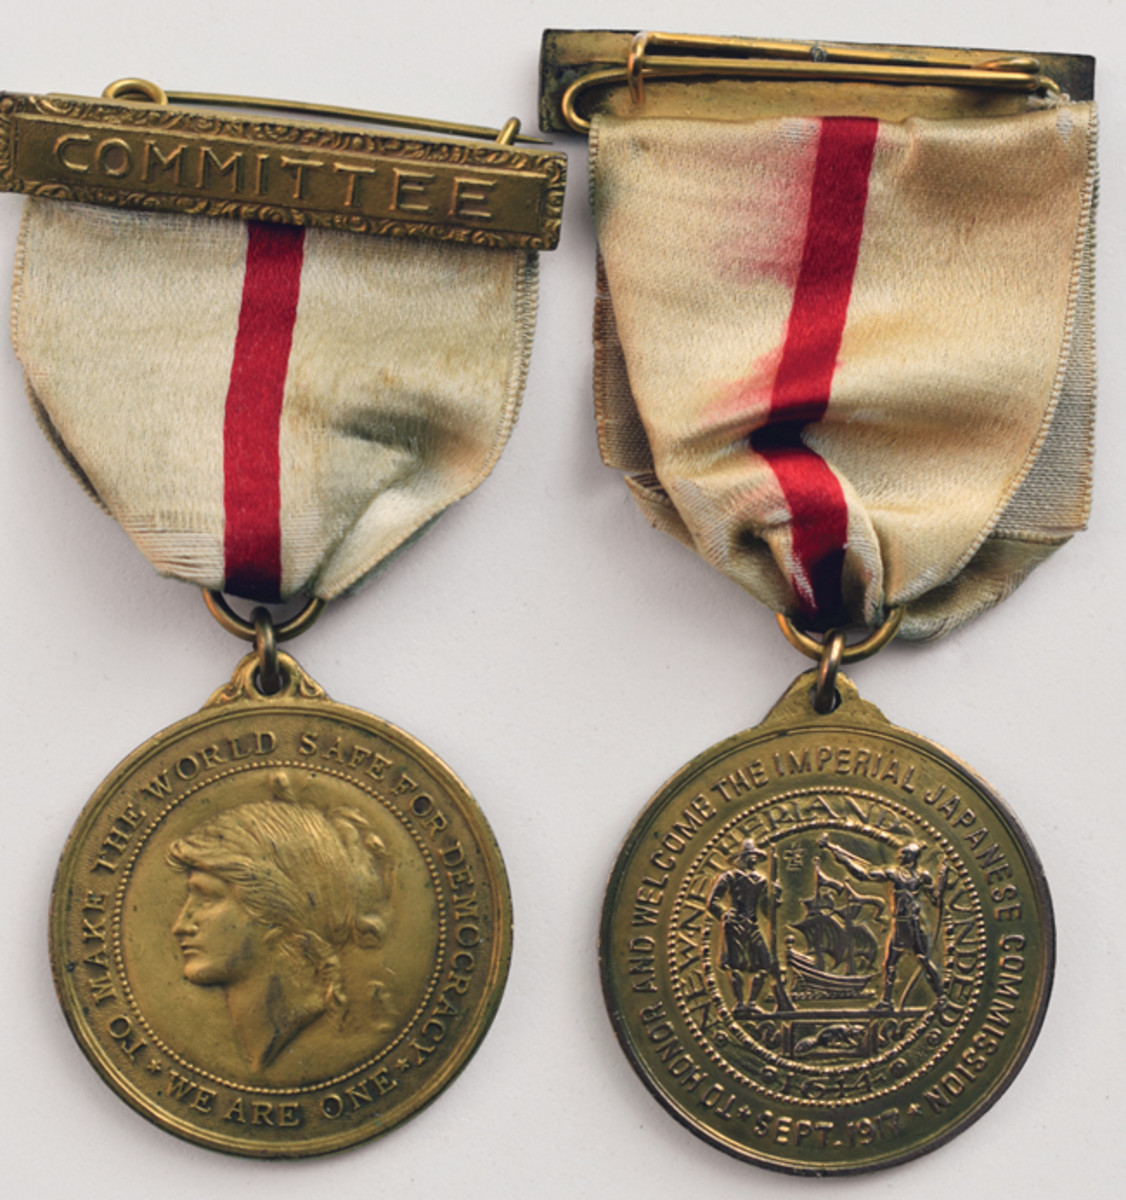 The Imperial Japanese War Commission medal is easily identified by the distinctive ribbon colors.